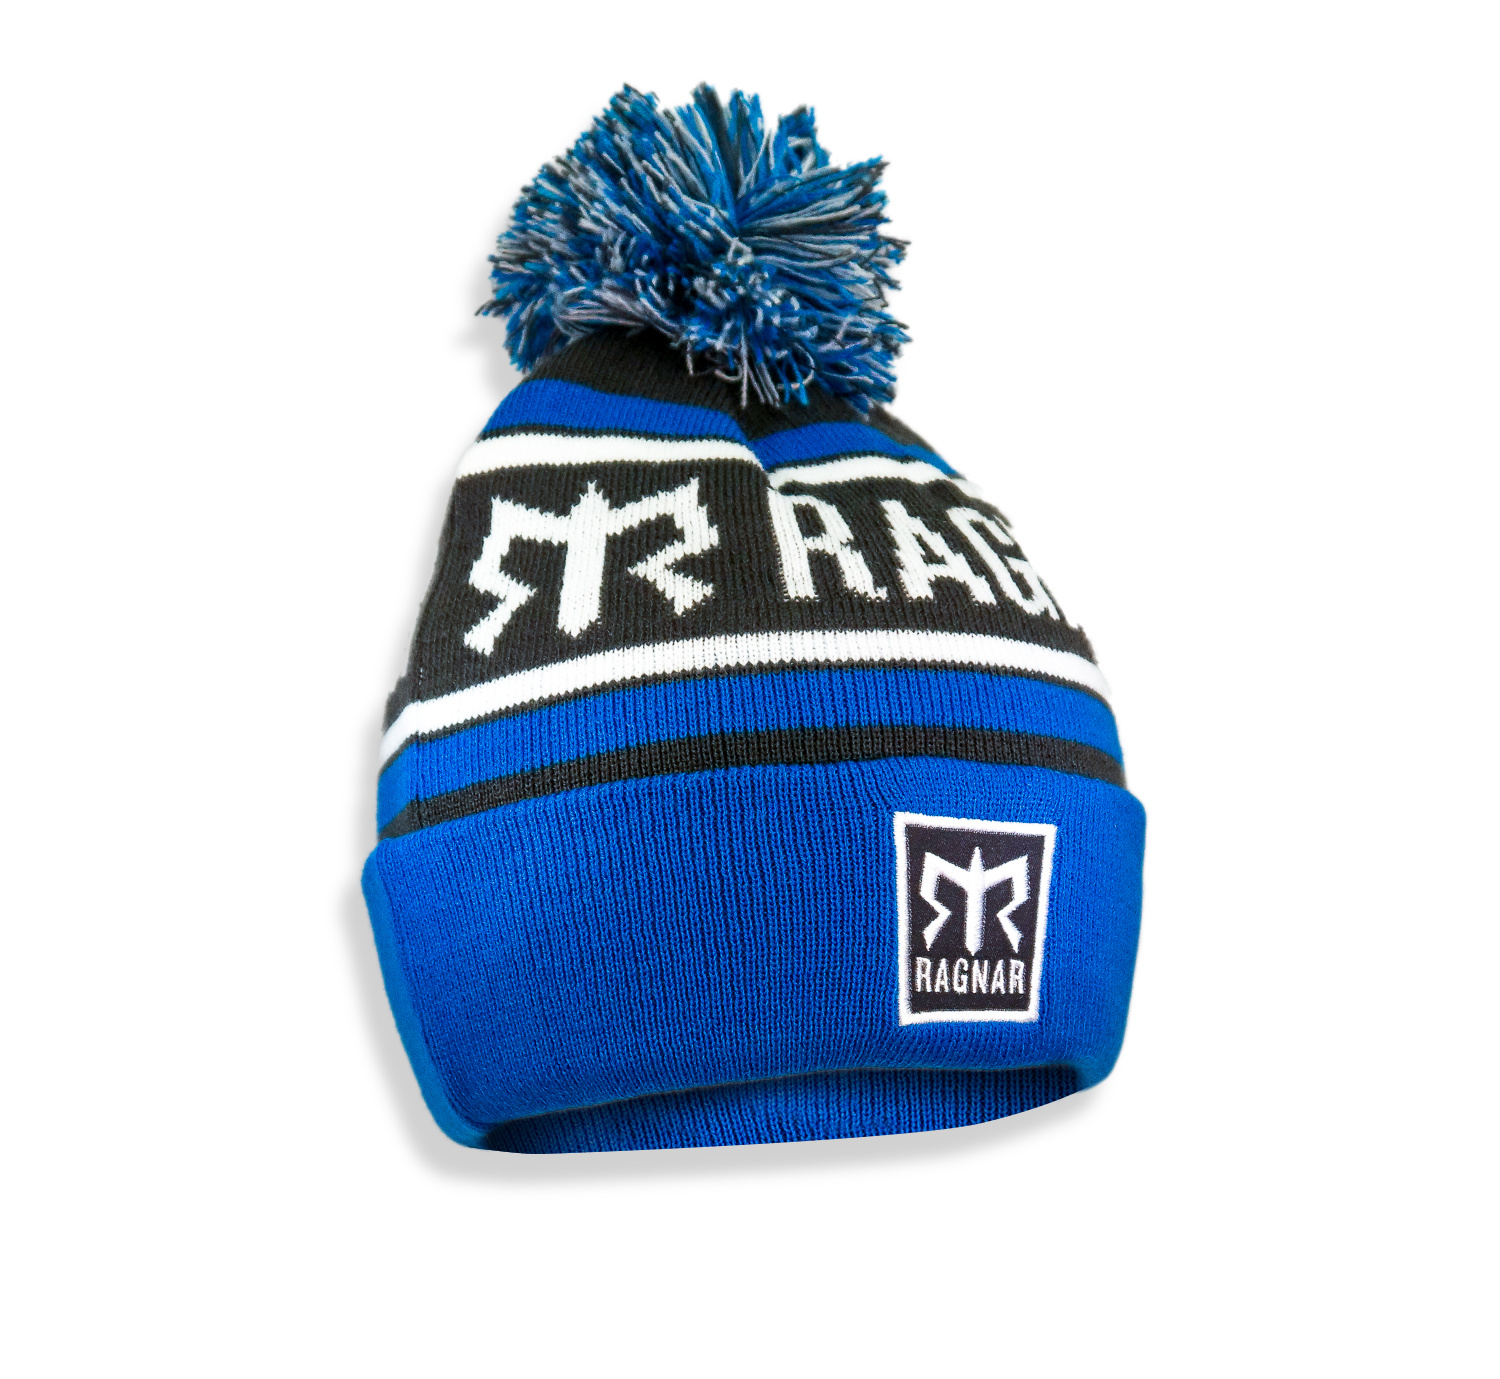 Ragnar Pom Pom Knit Beanie - Blue/Grey/White